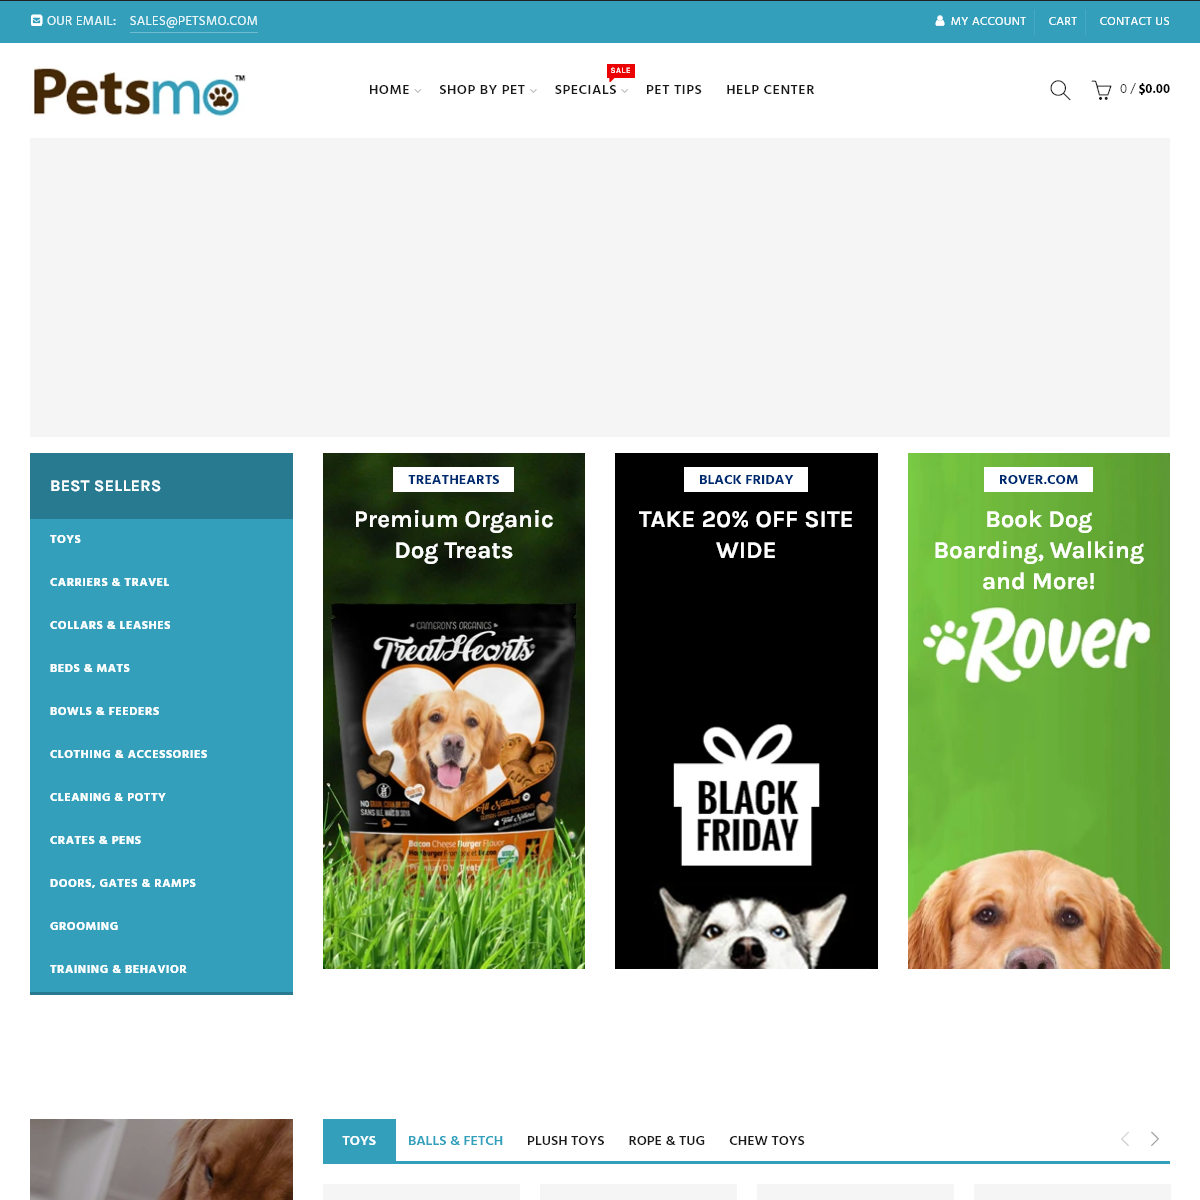 Petsmo - Shop Pet Supplies For Dogs, Cats, Birds, and Fish